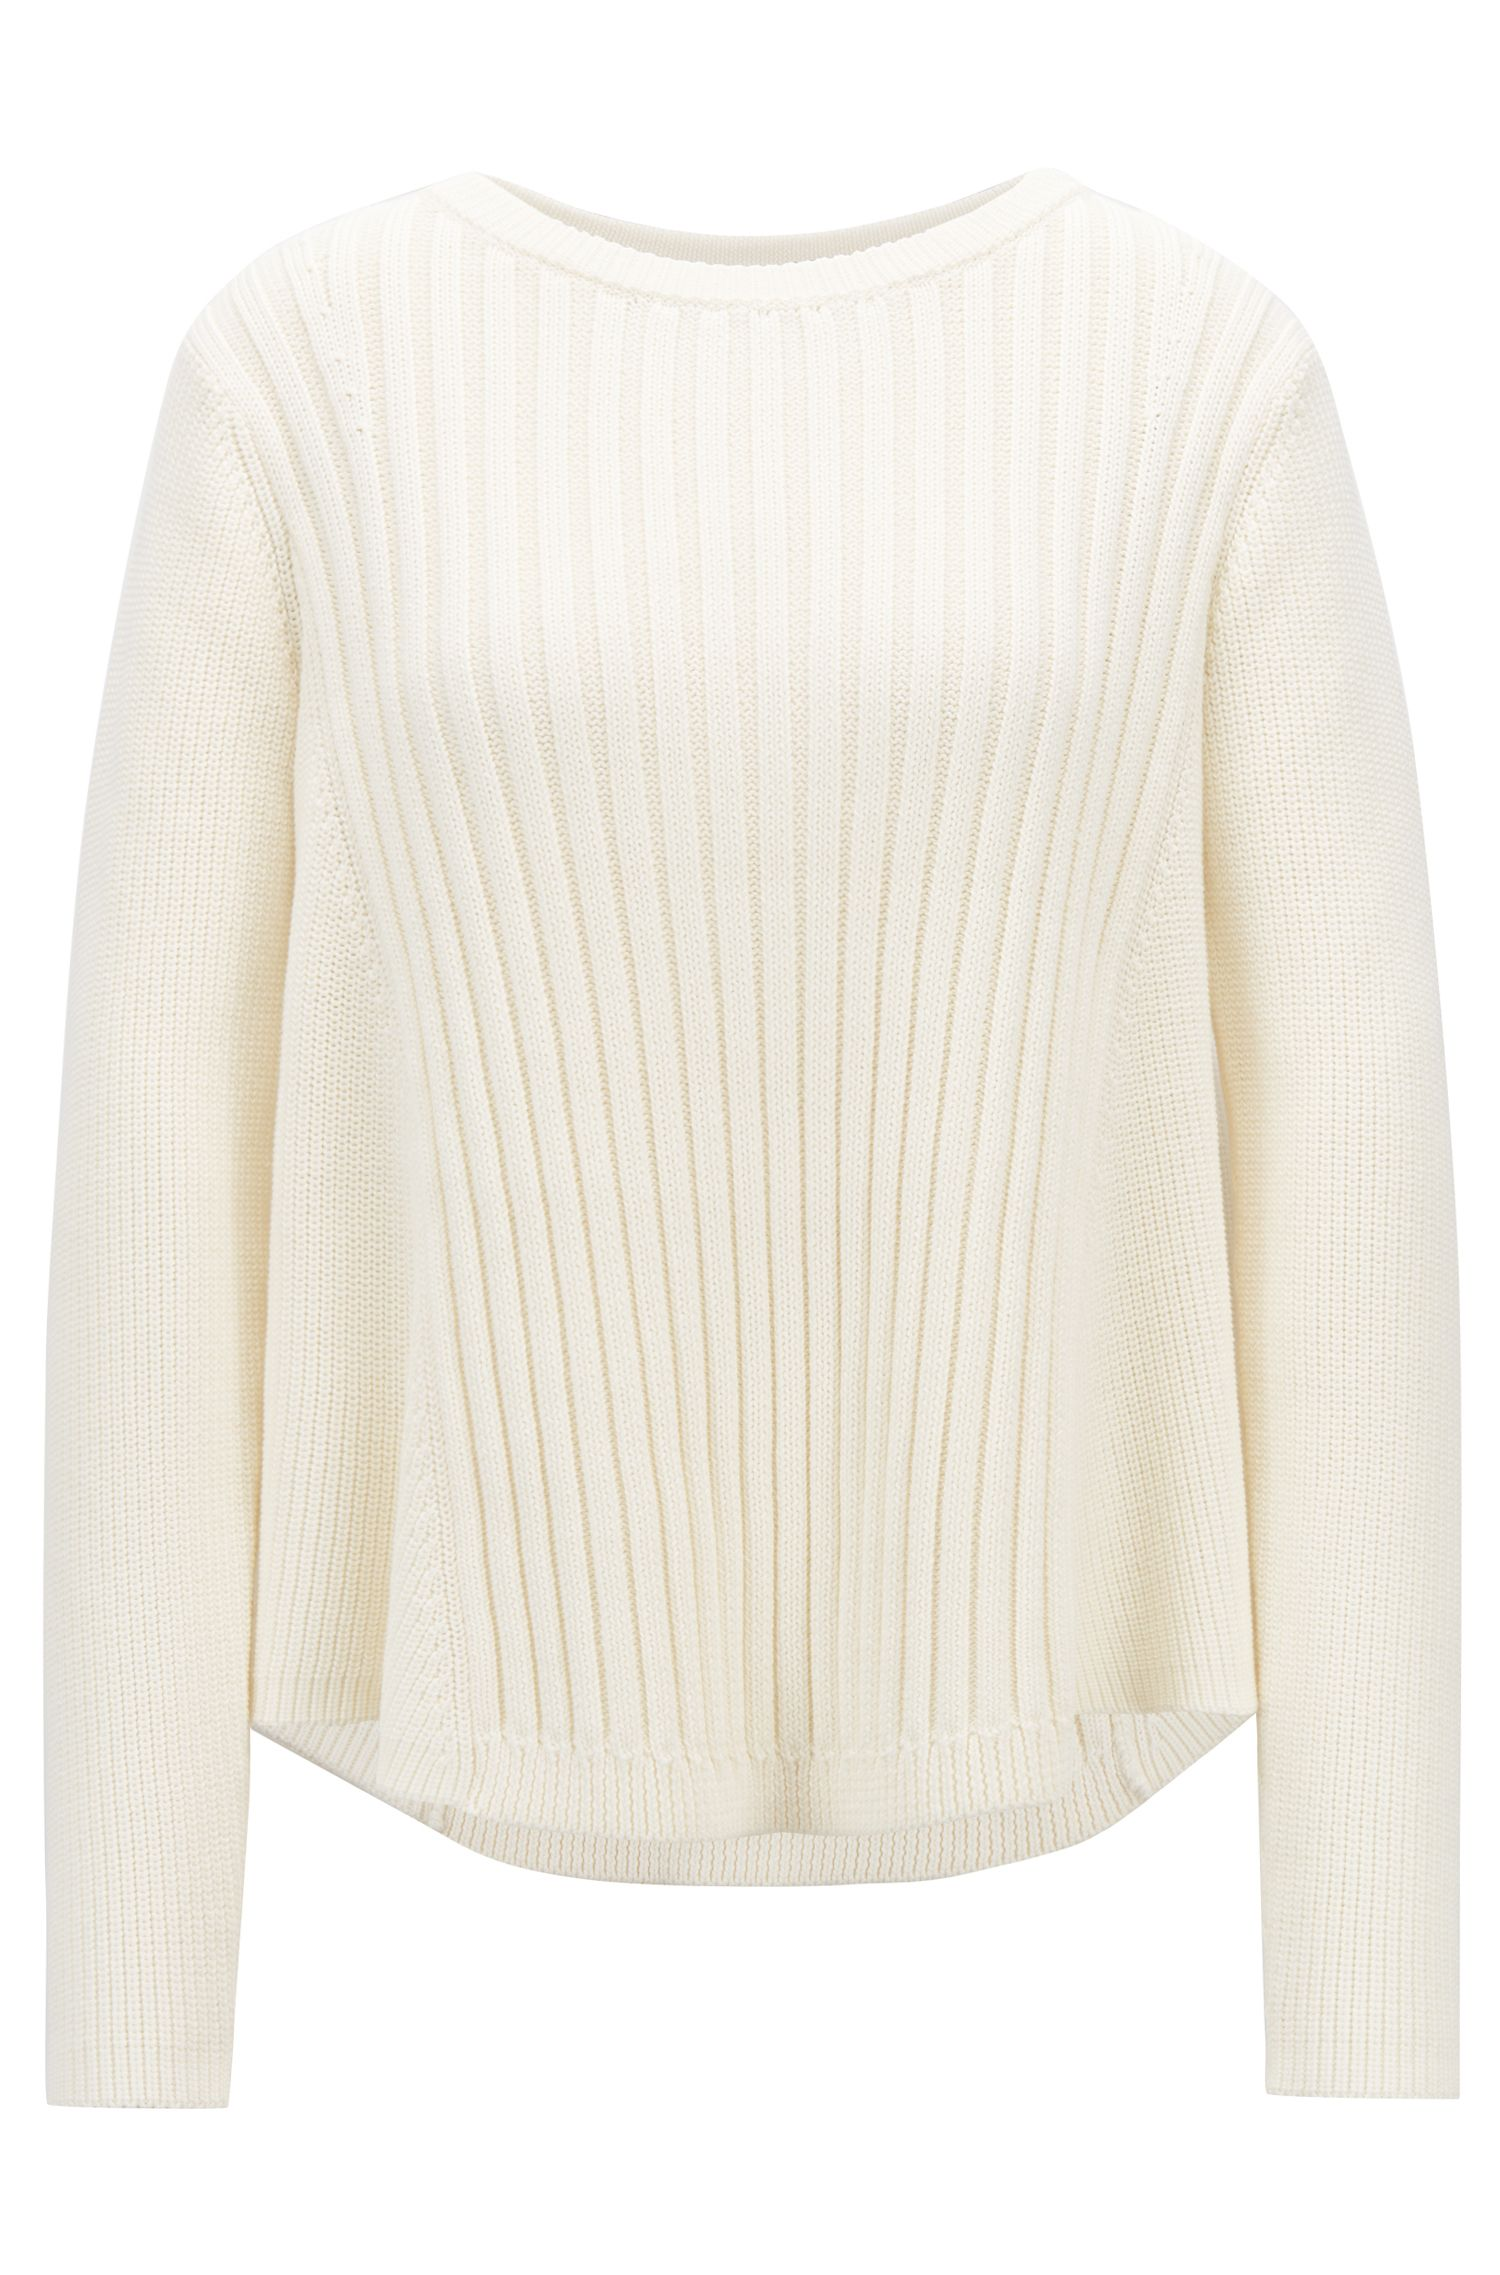 Flared crew-neck sweater in cotton with mixed structures